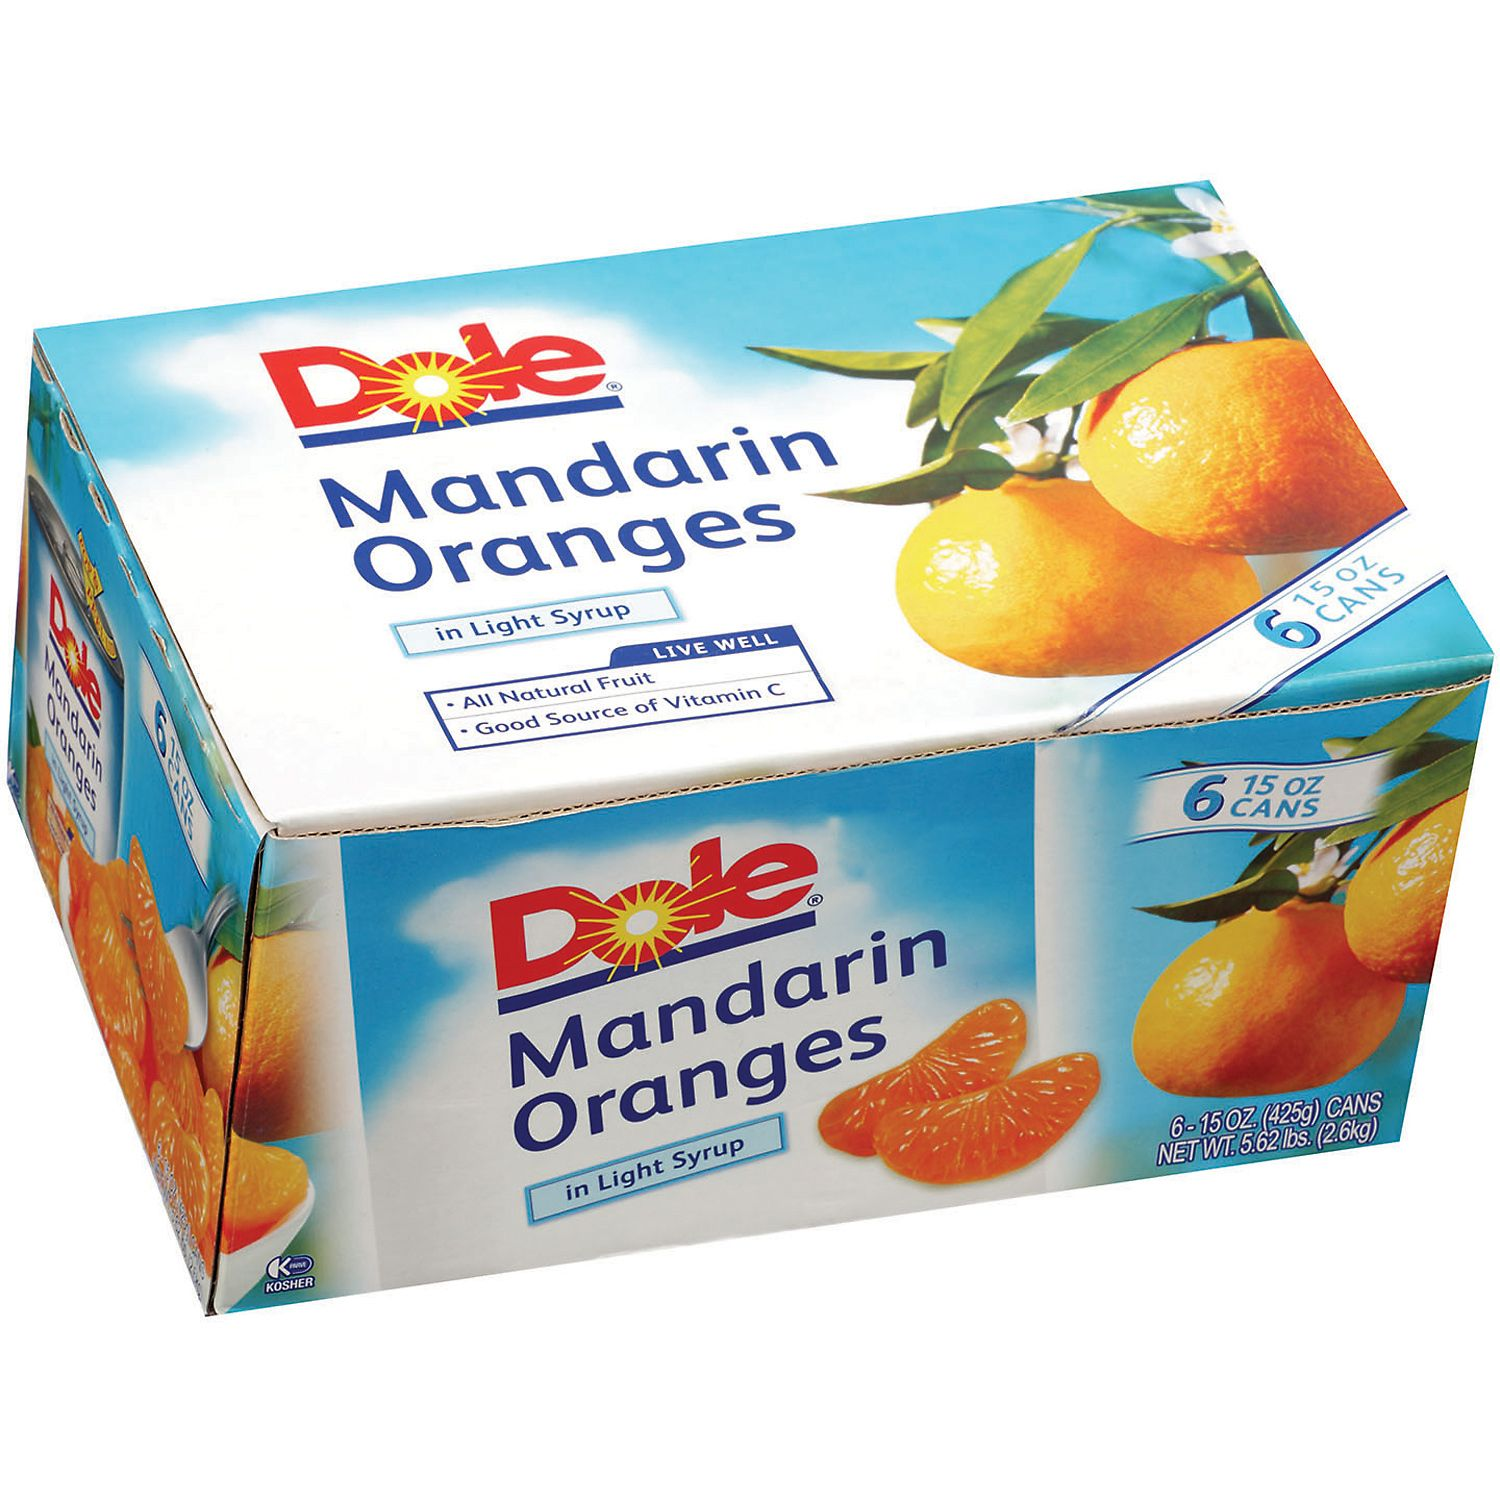 Dole Mandarin Oranges in Light Syrup - 15 oz. - 6 ct.